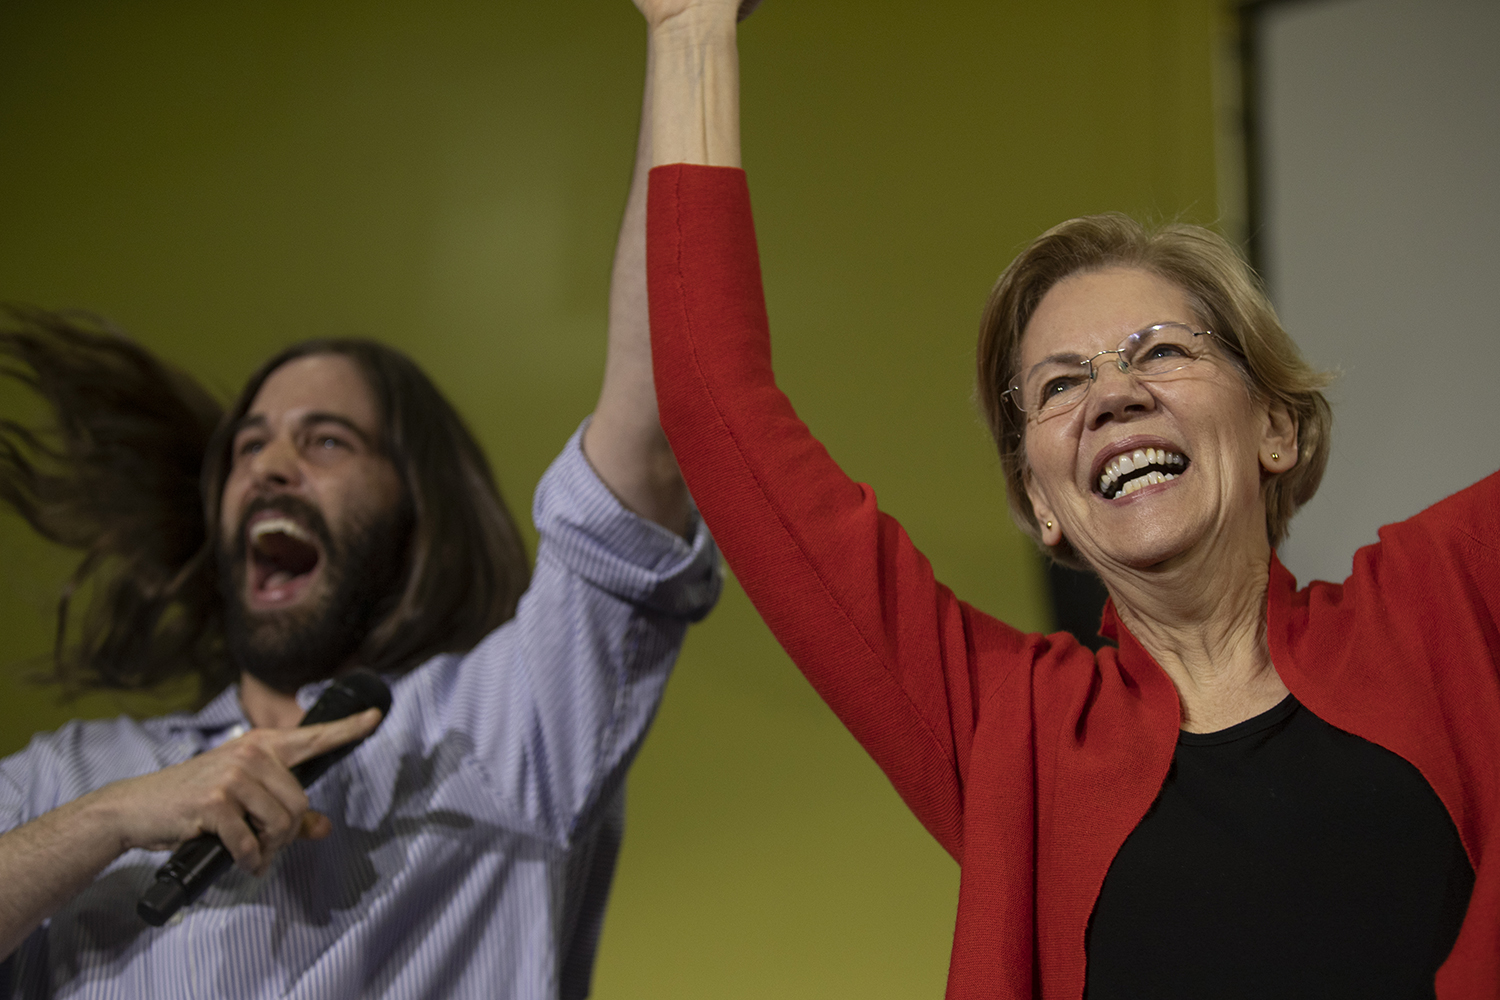 Hairstylist and reality TV Star Jonathan Van Ness introduces Sen. Elizabeth Warren, D-Mass., at NewBo Market in Cedar Rapids on Sunday, Jan. 26. Van Ness endorsed Warren and spoke about her platform issues such as health care and discrimination.